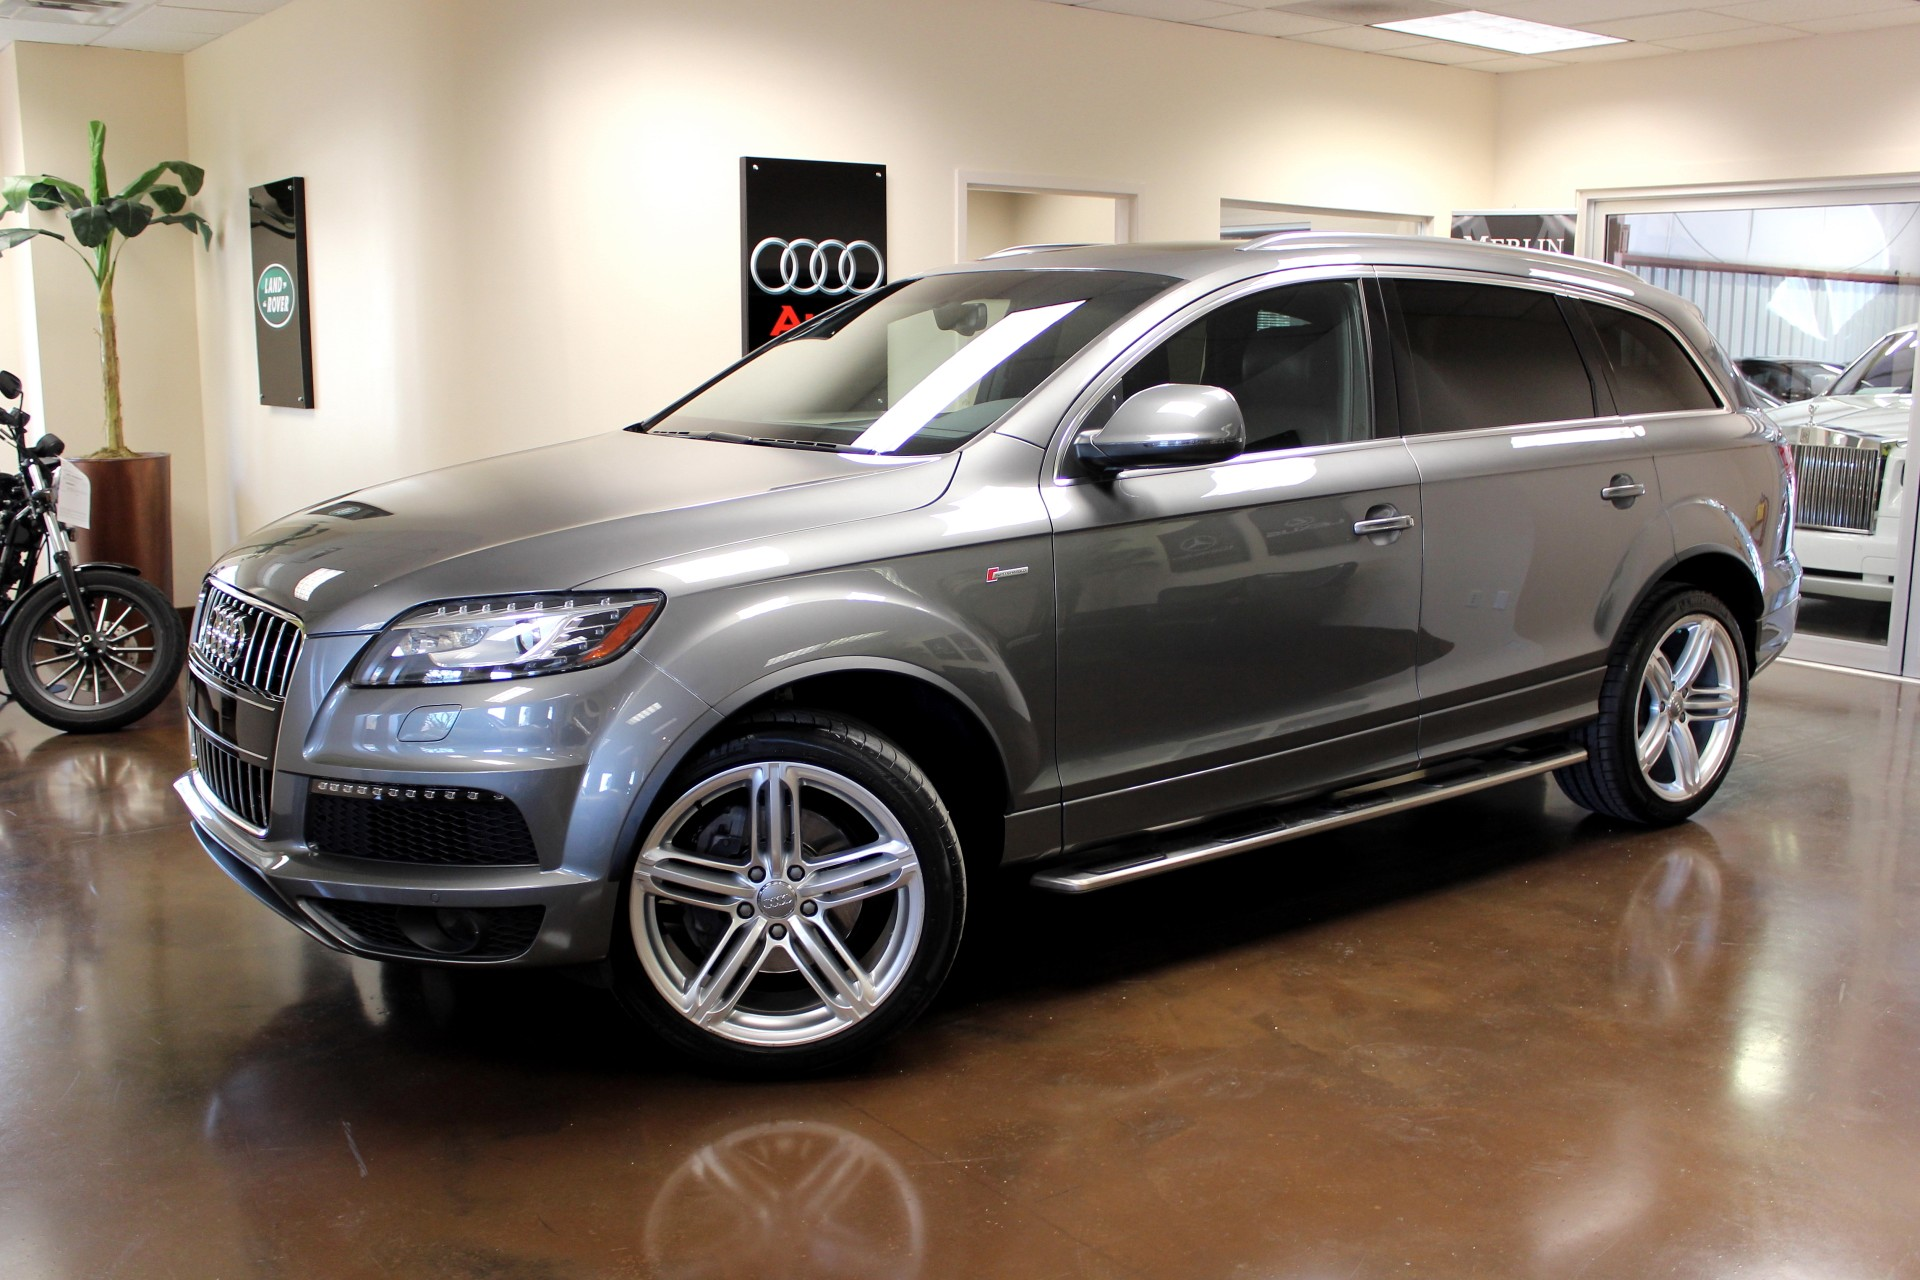 Used 2013 Audi Q7 stock P2884A - Ultra Luxury Car from Merlin Auto Group